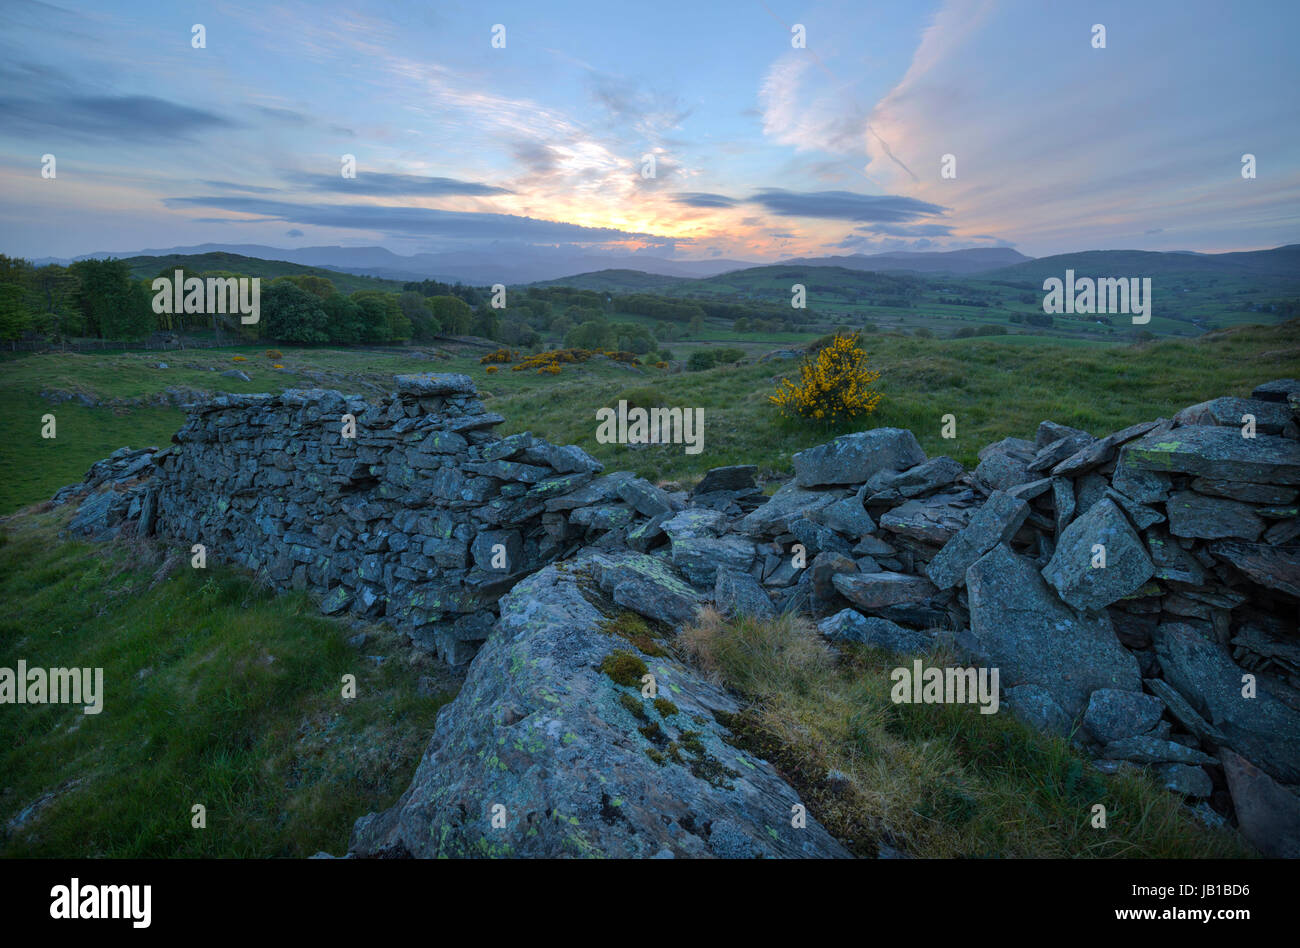 Sundown over a rural setting at Crook in the Lake District - Stock Image